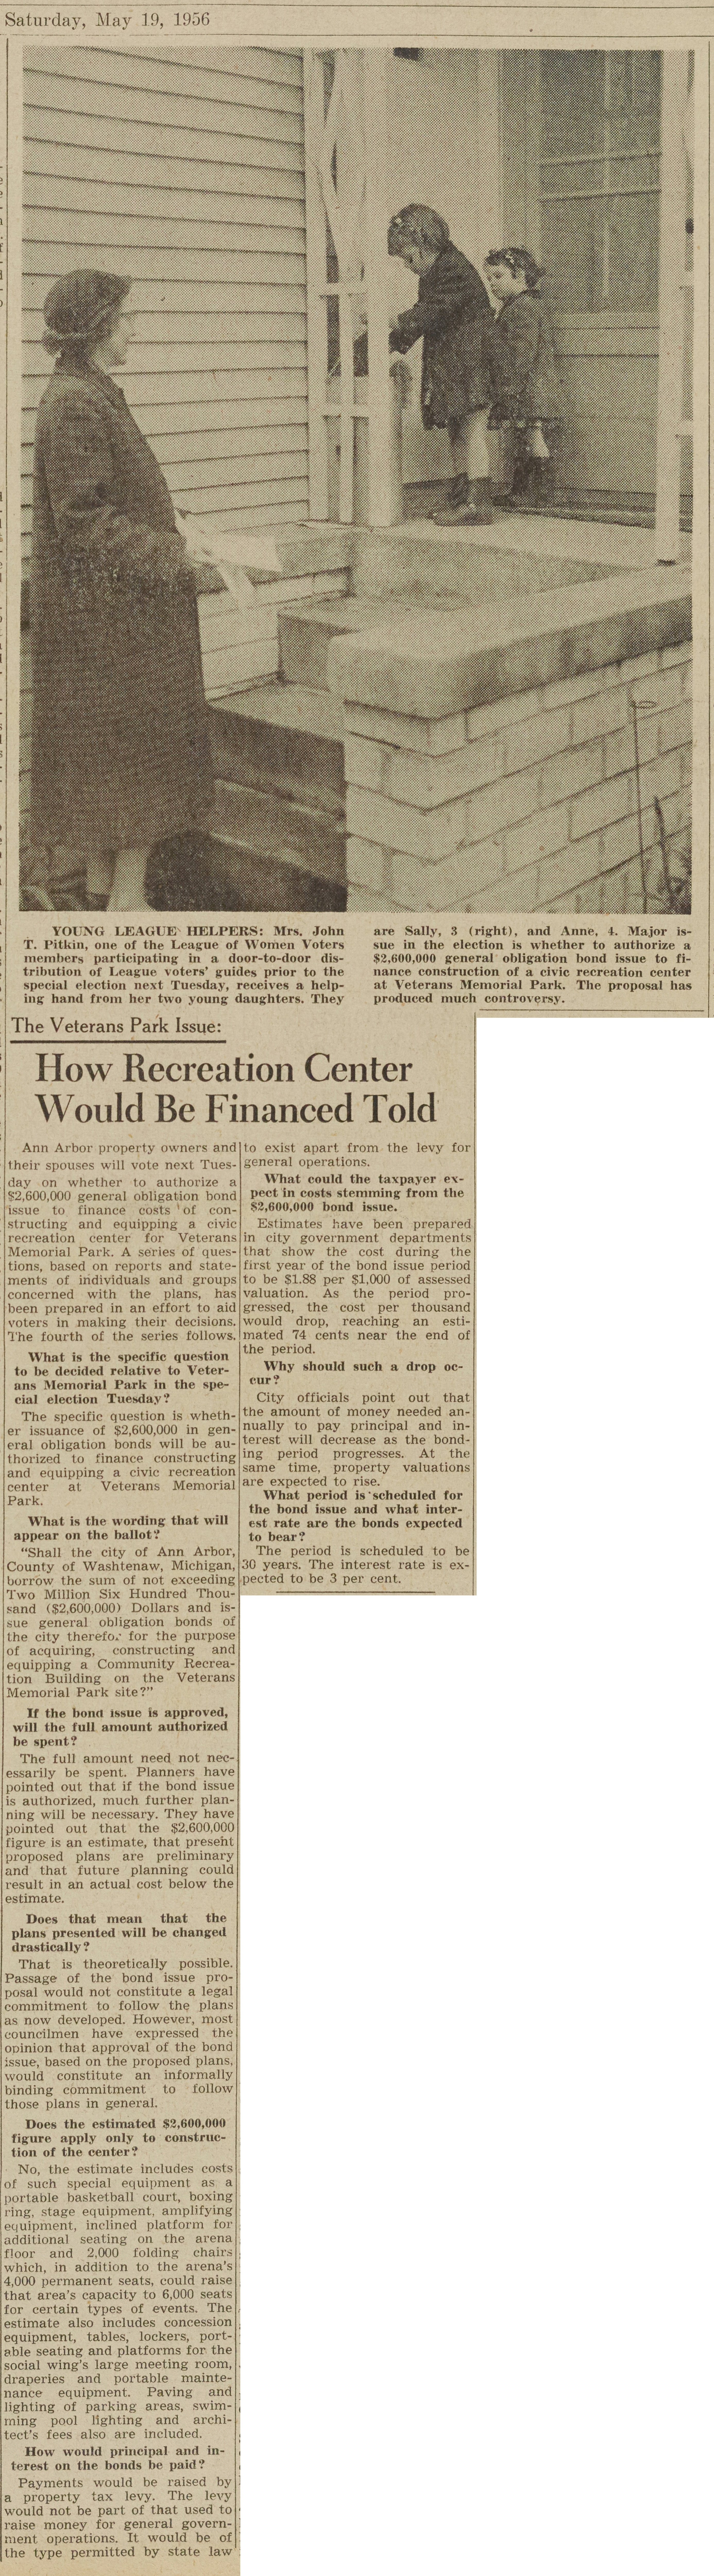 How Recreation Center Would Be Financed Told image